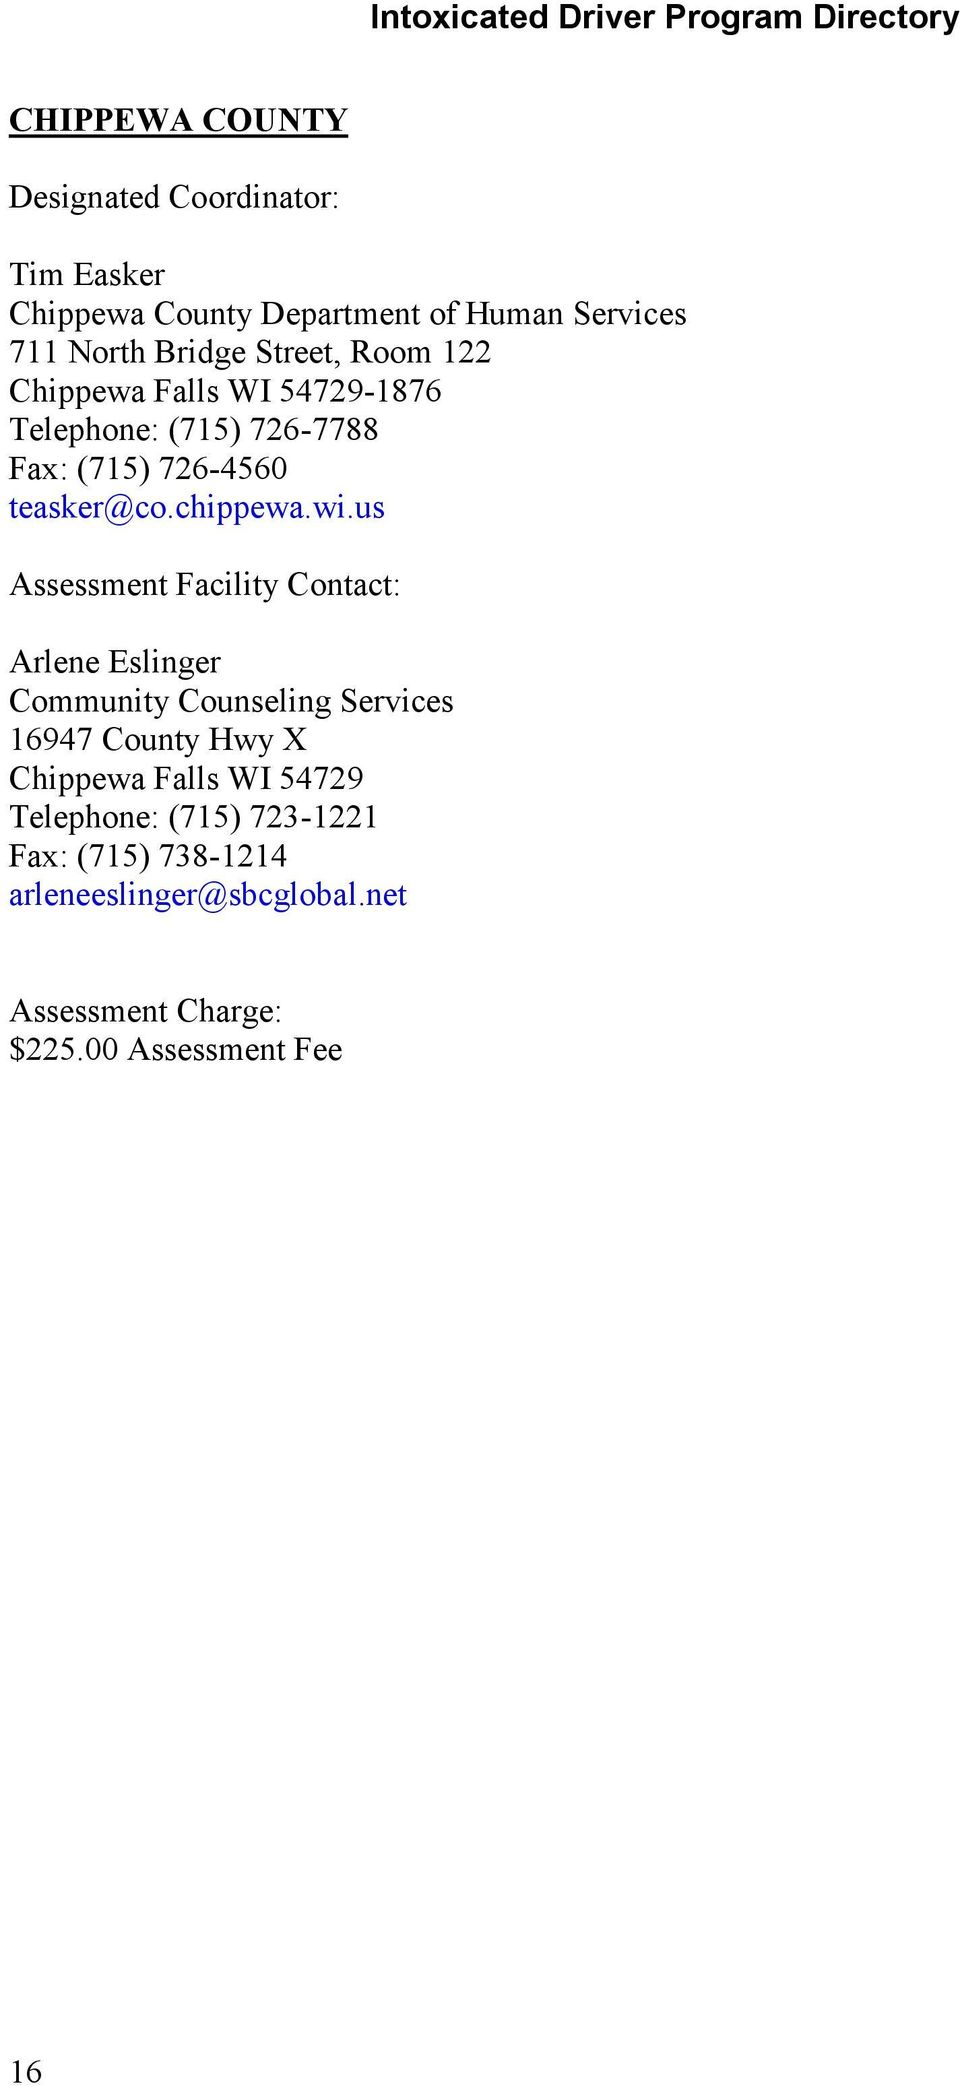 Intoxicated Driver Program Directory  To: State, County, and Local